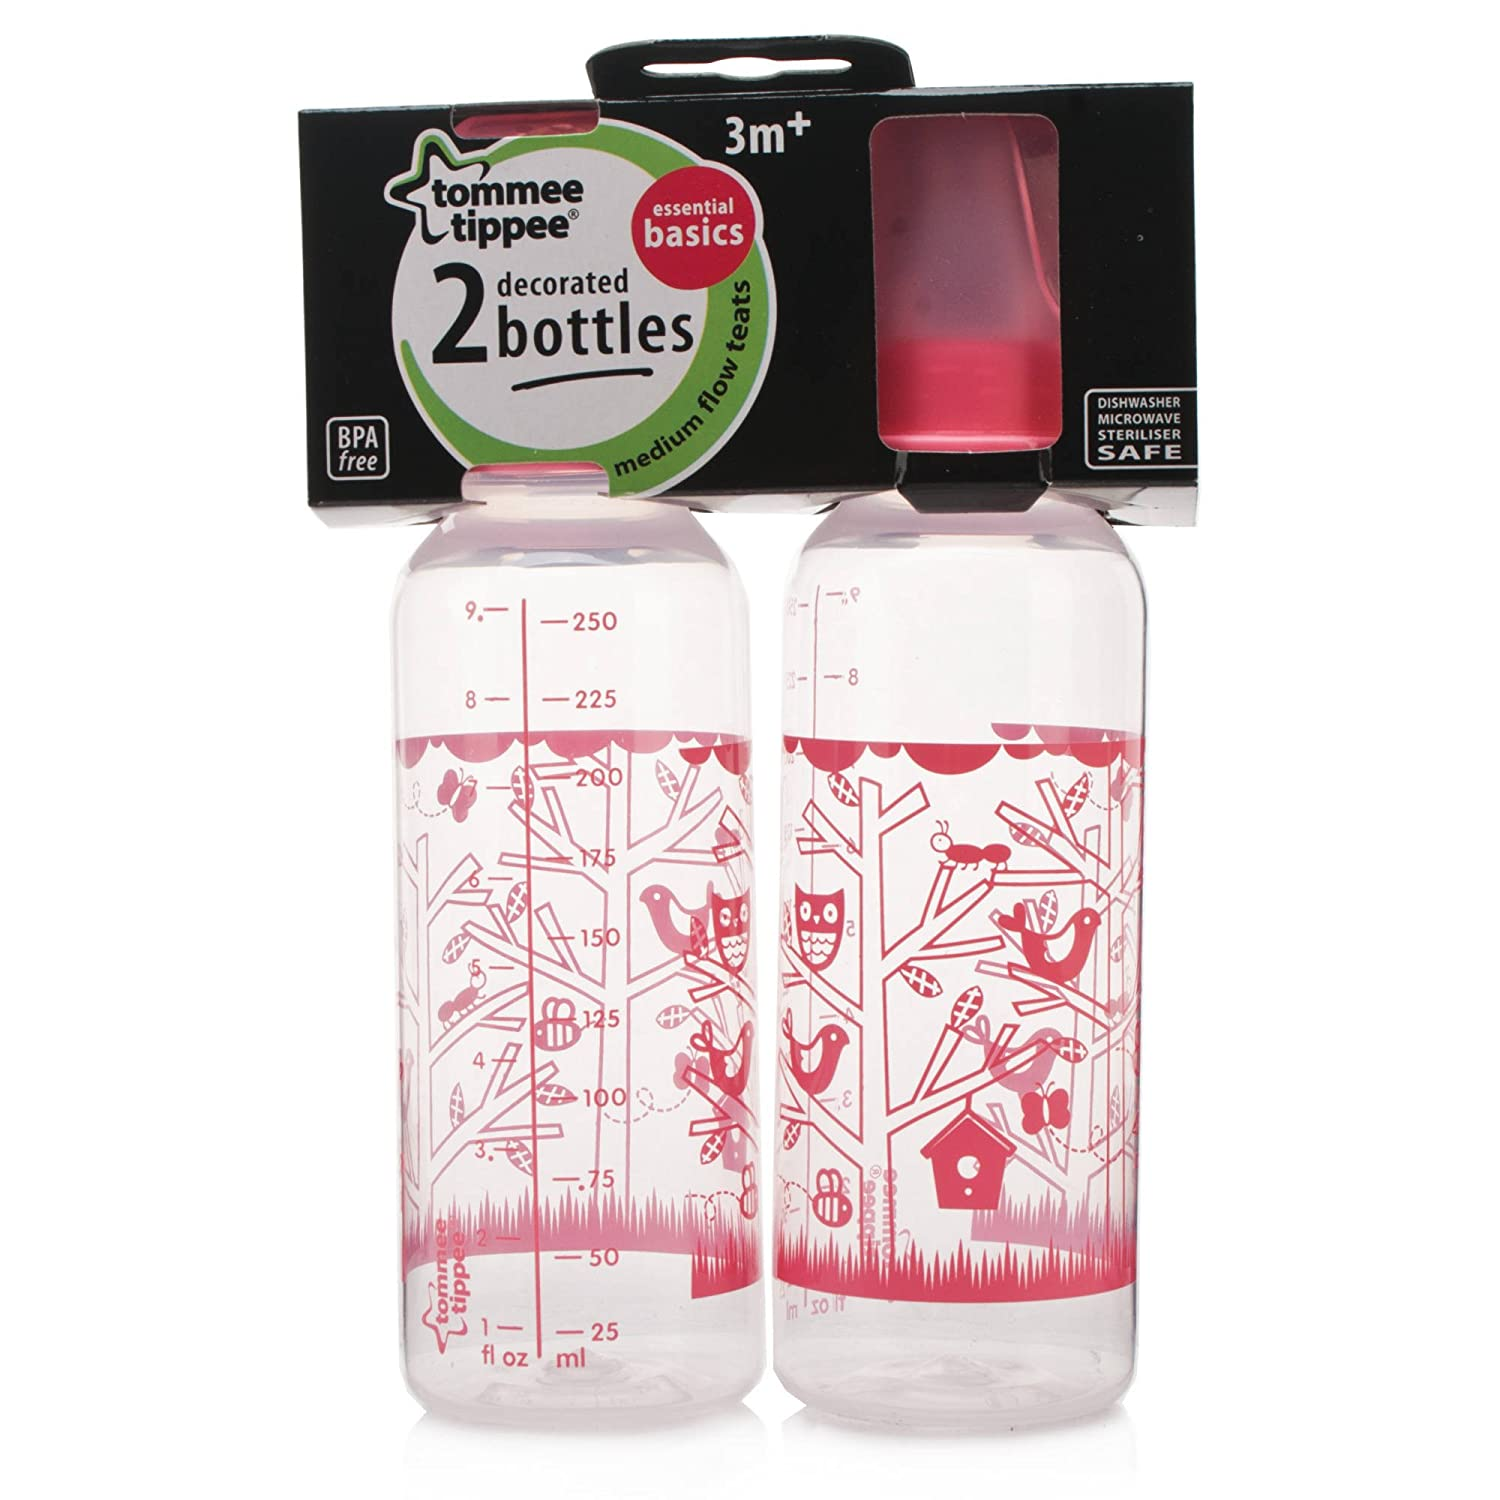 Medium Flow Teats Pink or Blue you choose the color Tommee Tippee Essential Basics 2-pack Decorated Bottles 3m+ 43172030 Pink